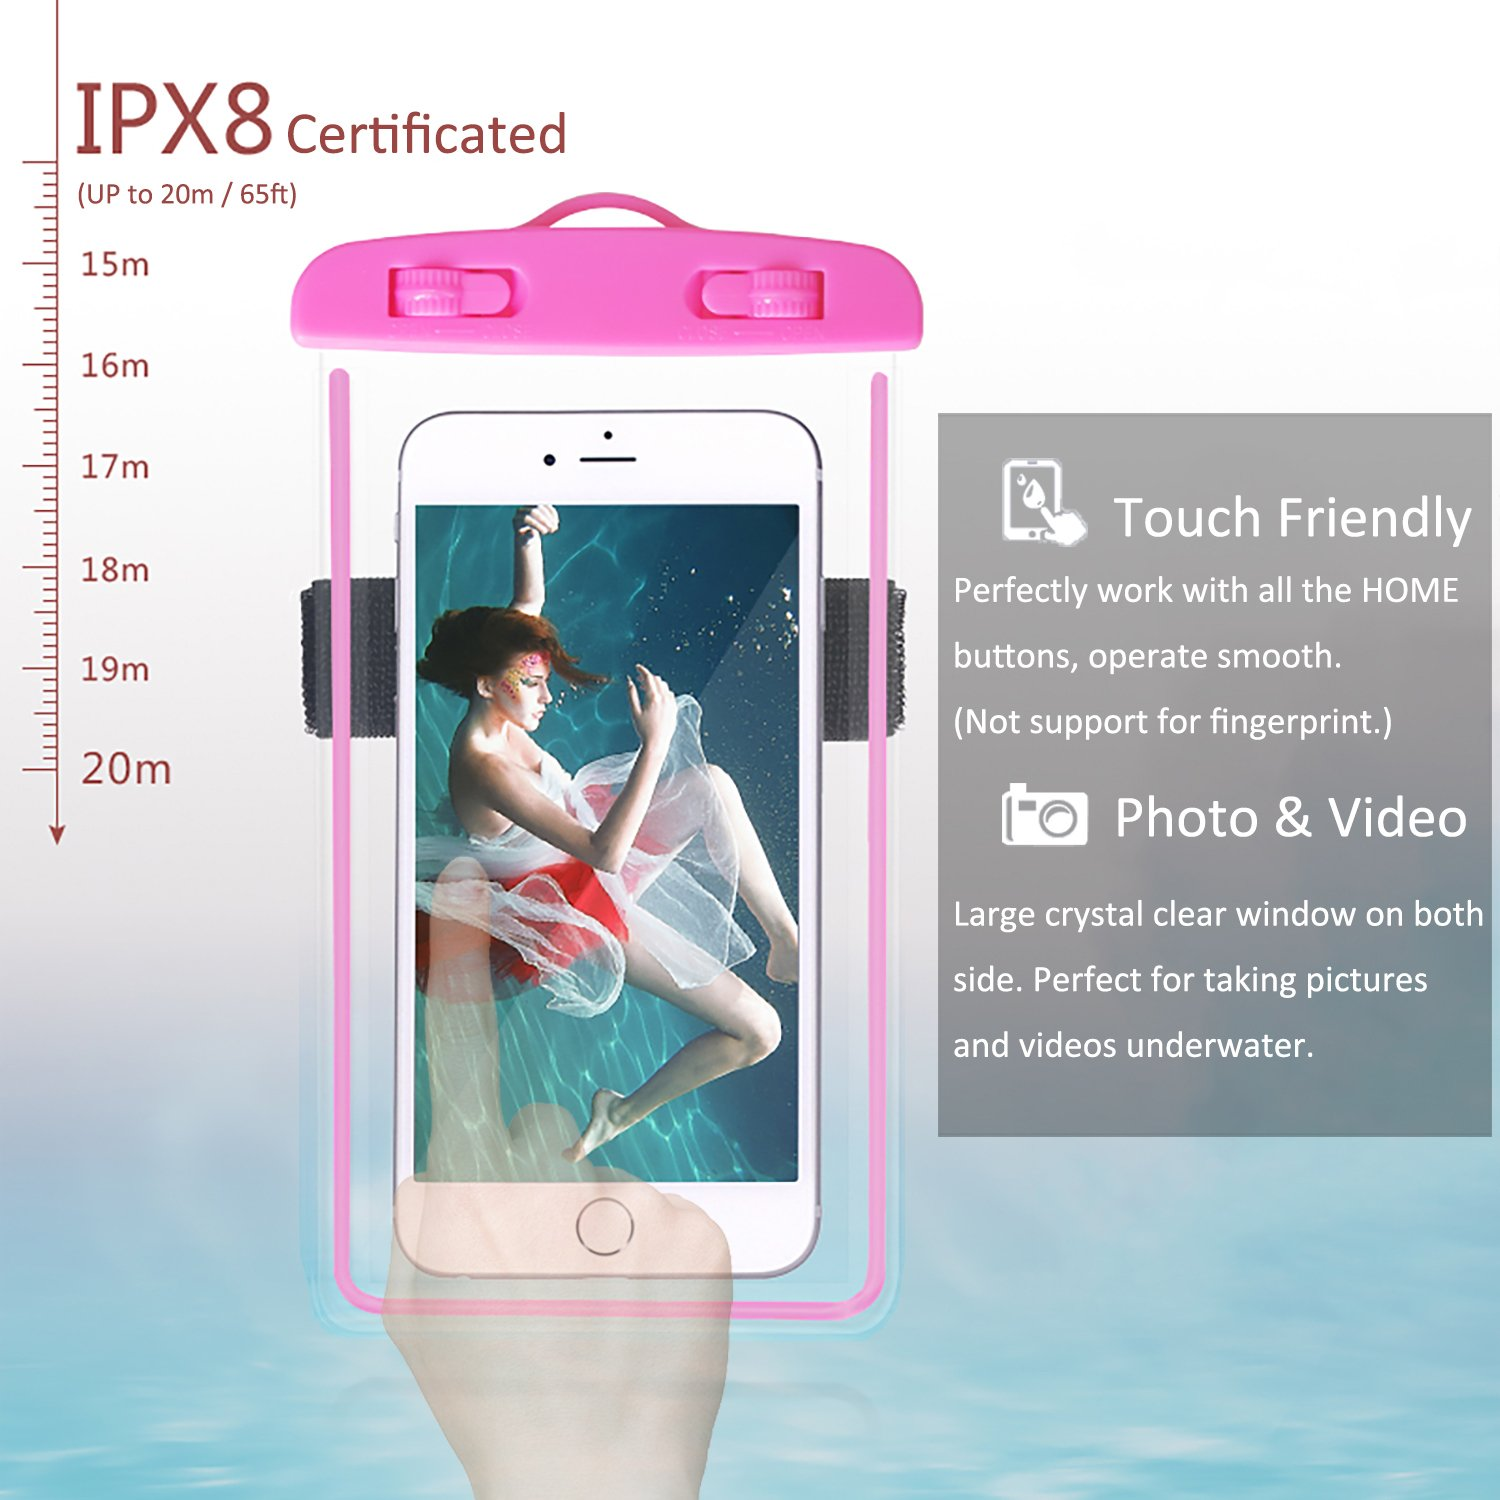 4-Pack Waterproof Case with Armband & Neck Strap, Luminous Transparent Cellphone Dry Bag Phone Pouch for iPhone X/8/7Plus/6S, Huawei, Samsung Galaxy Note HTC LG Sony up to 6.0'' (Assorted E) by Yii Design (Image #3)